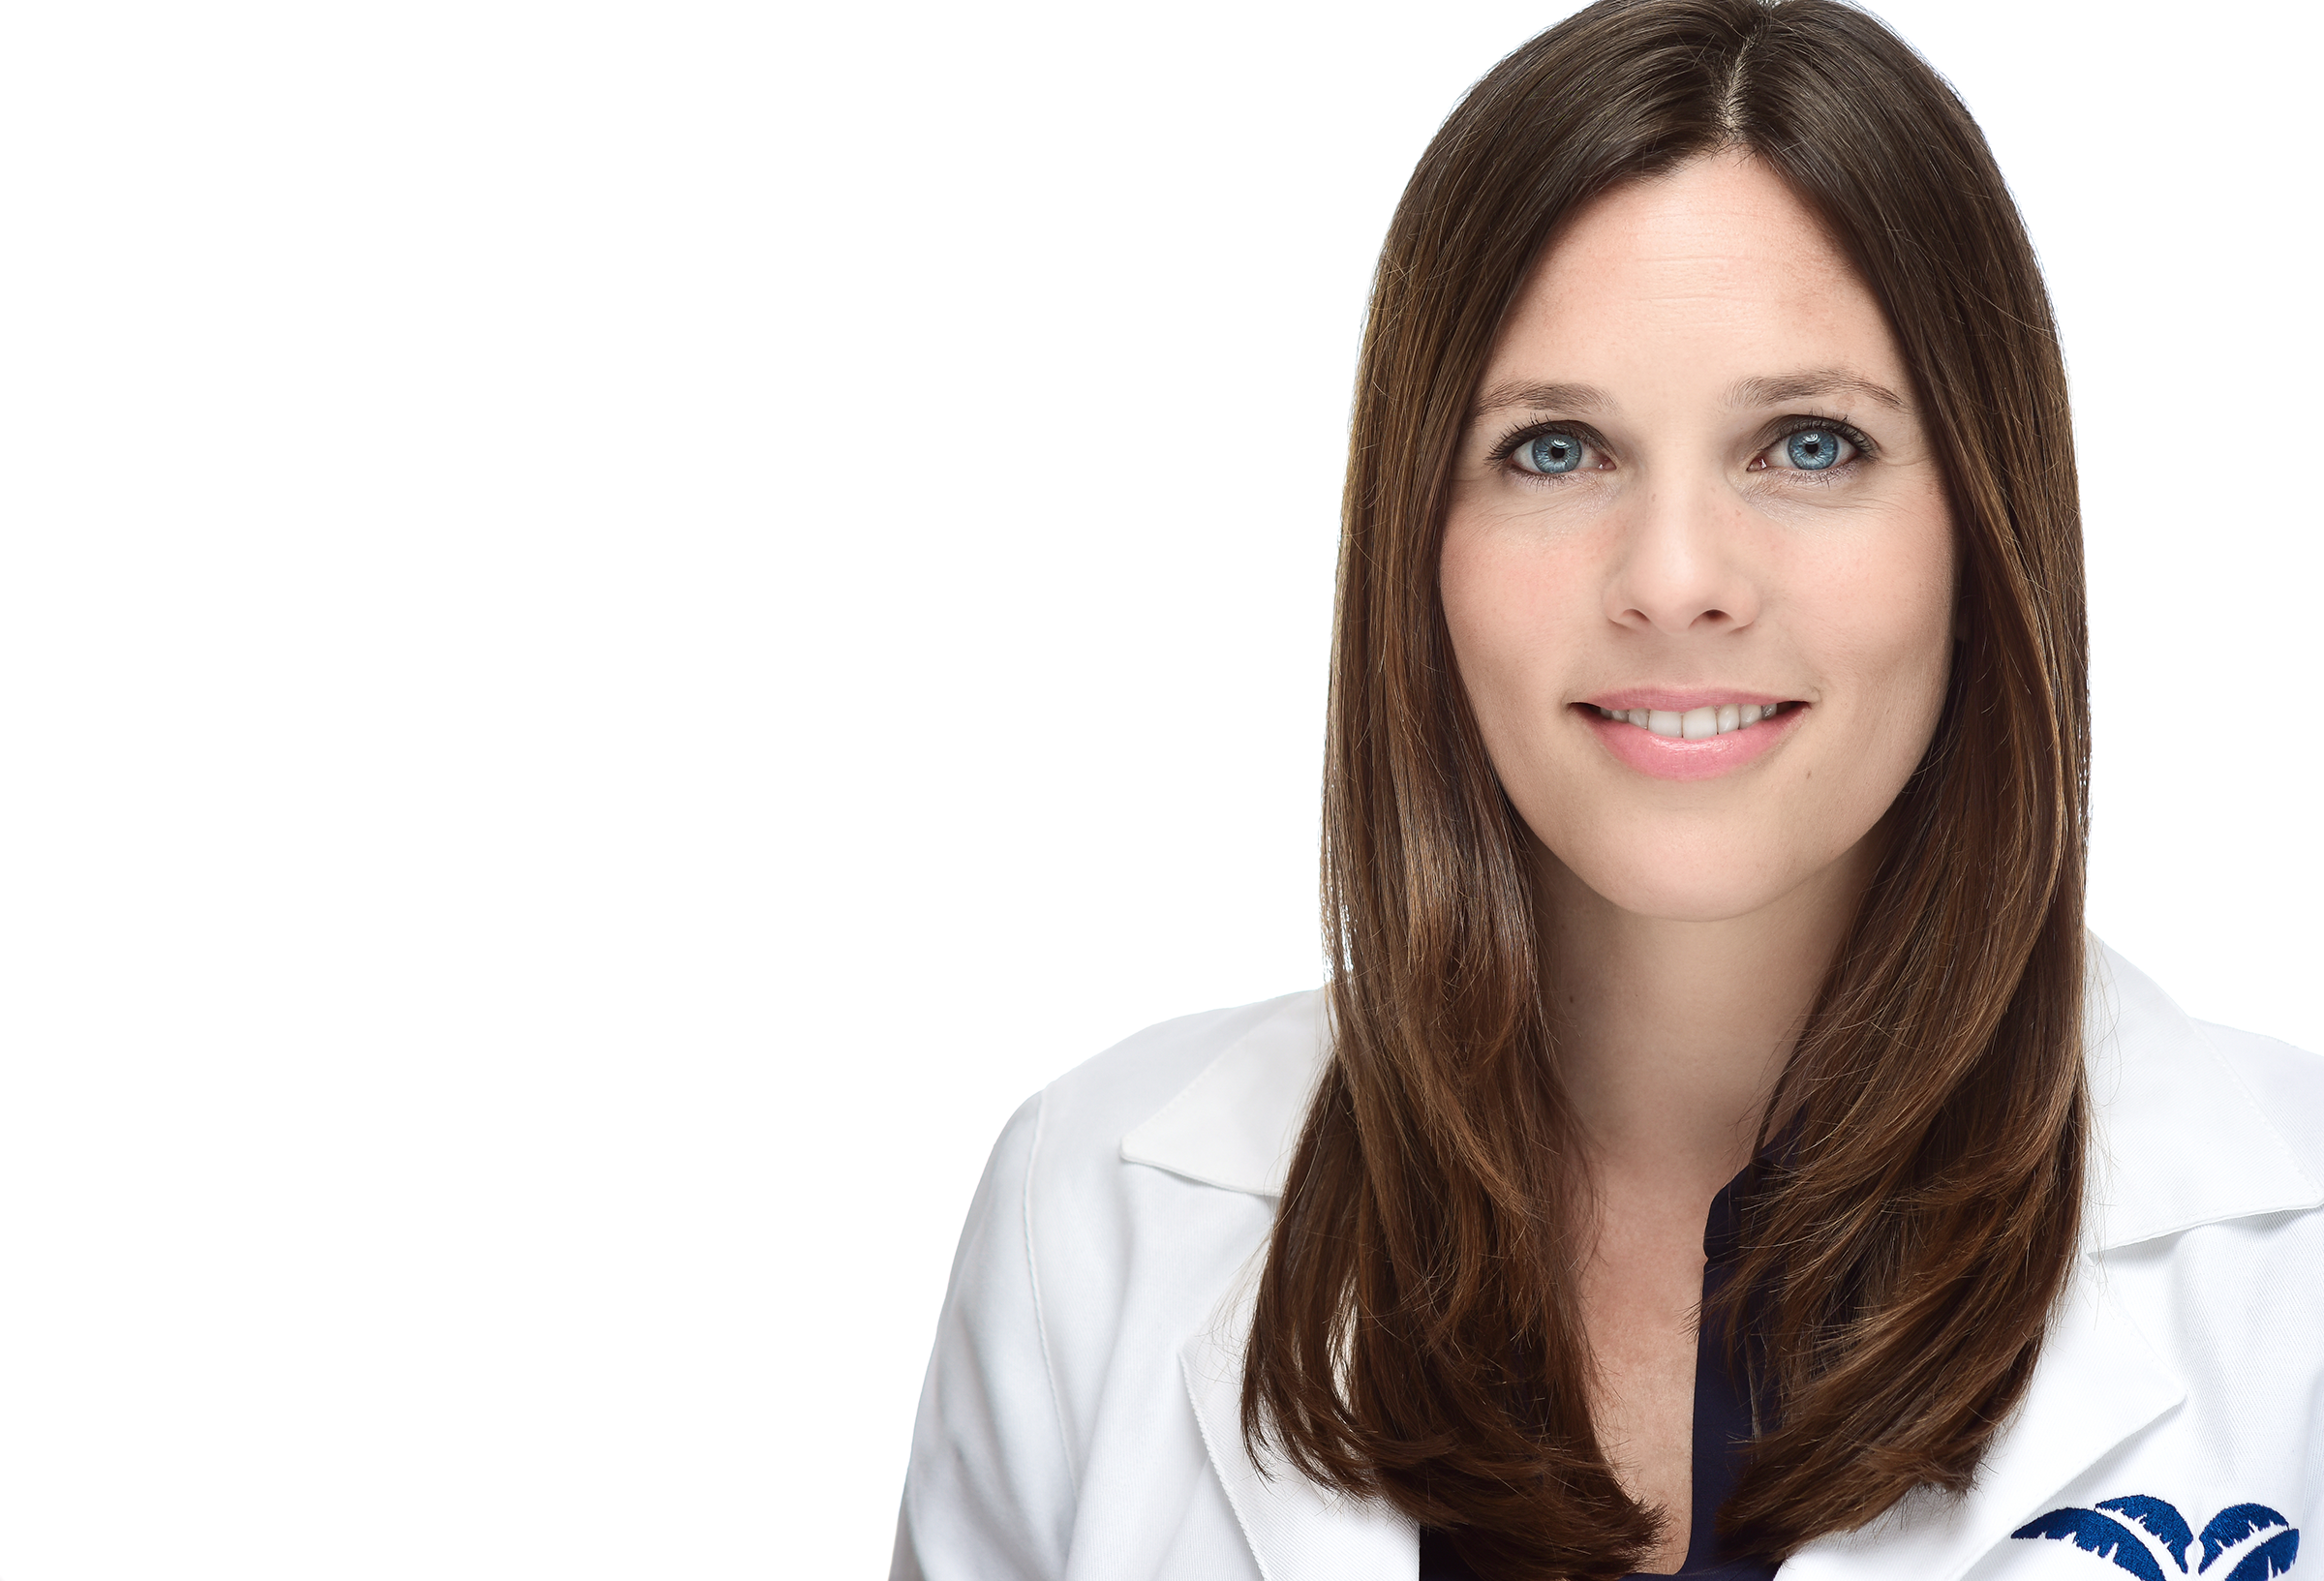 Dr. Lauren Munsch Dal Farra, CEO of PALM Health, shares information about cryotherapy.